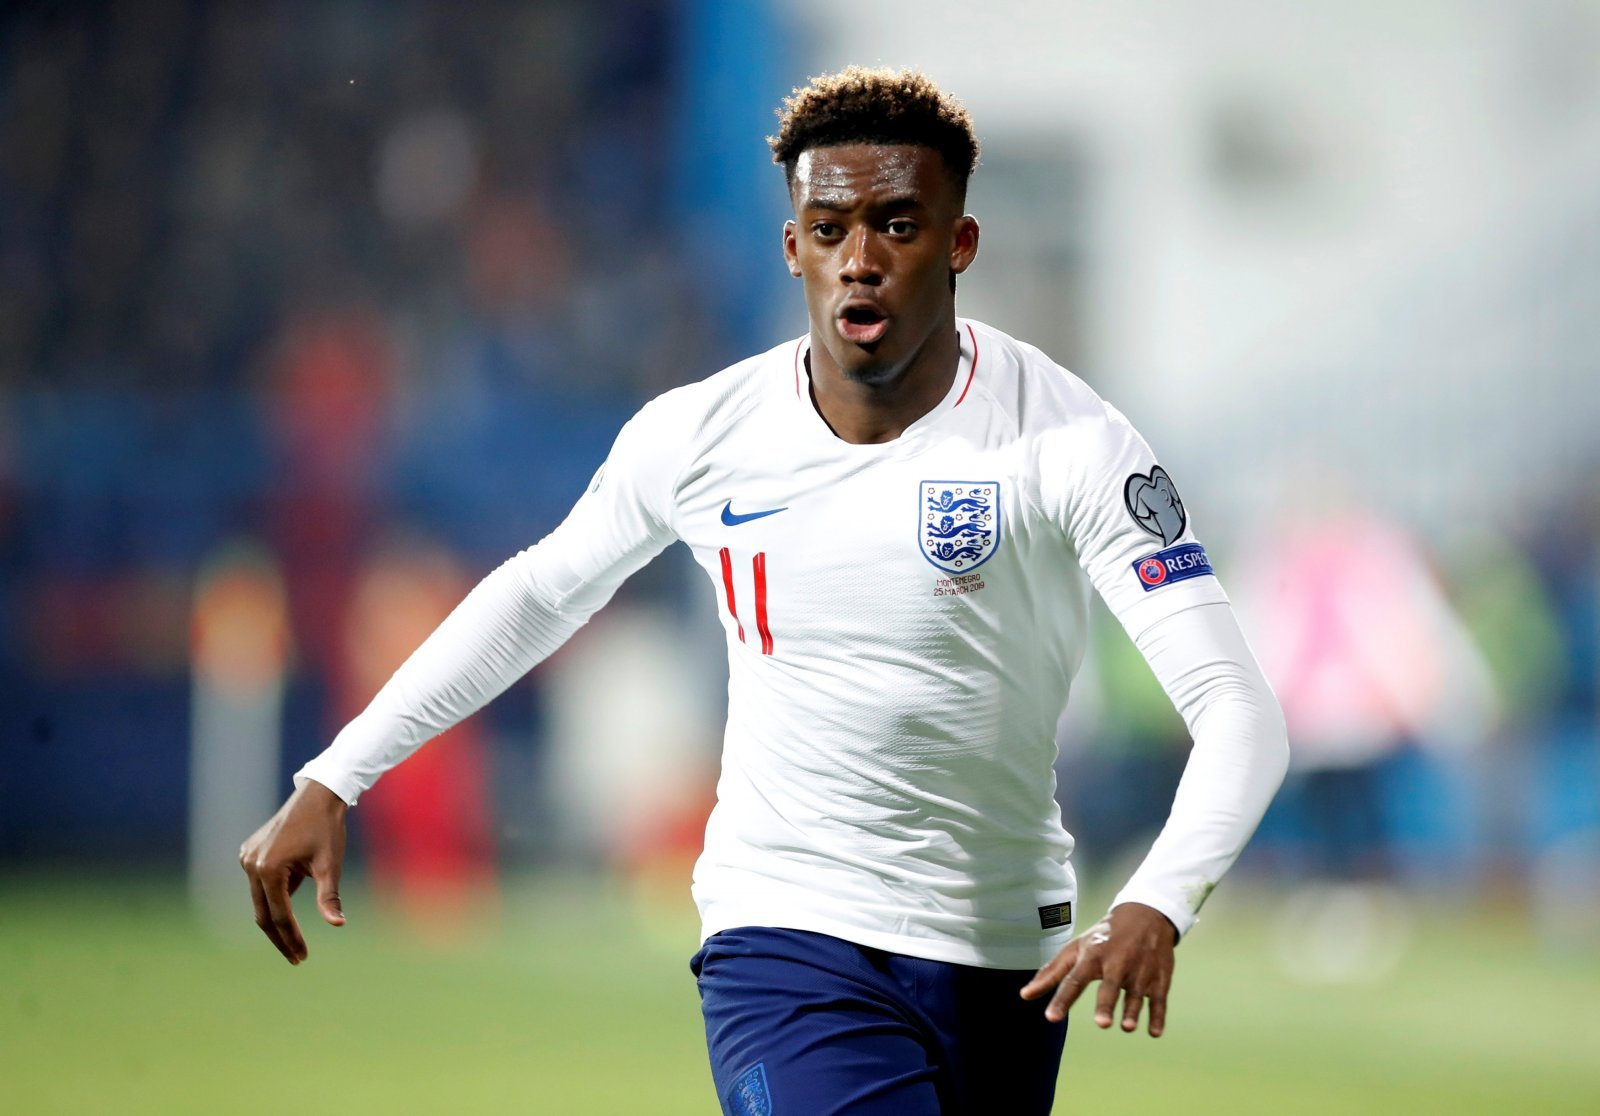 Potential Consequences: Callum Hudson-Odoi unavailable for Chelsea selection